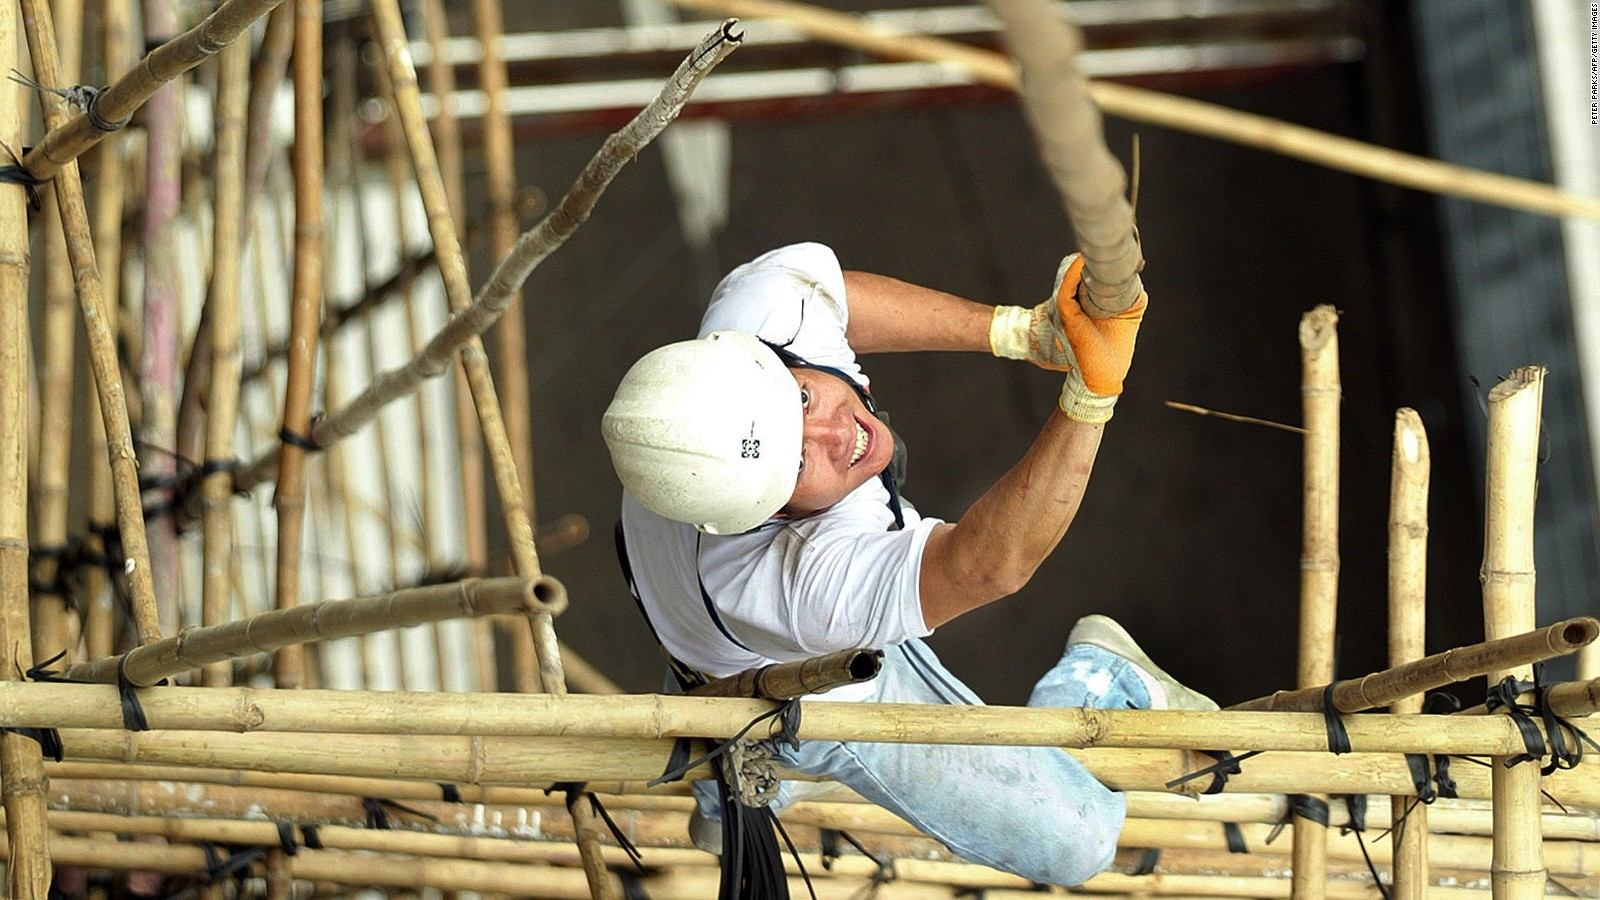 How Authentic Is This Bamboo Scaffolding Pop Up Bar Cnn Travel Worker Making Wiring Loom Stock Photo Getty Images